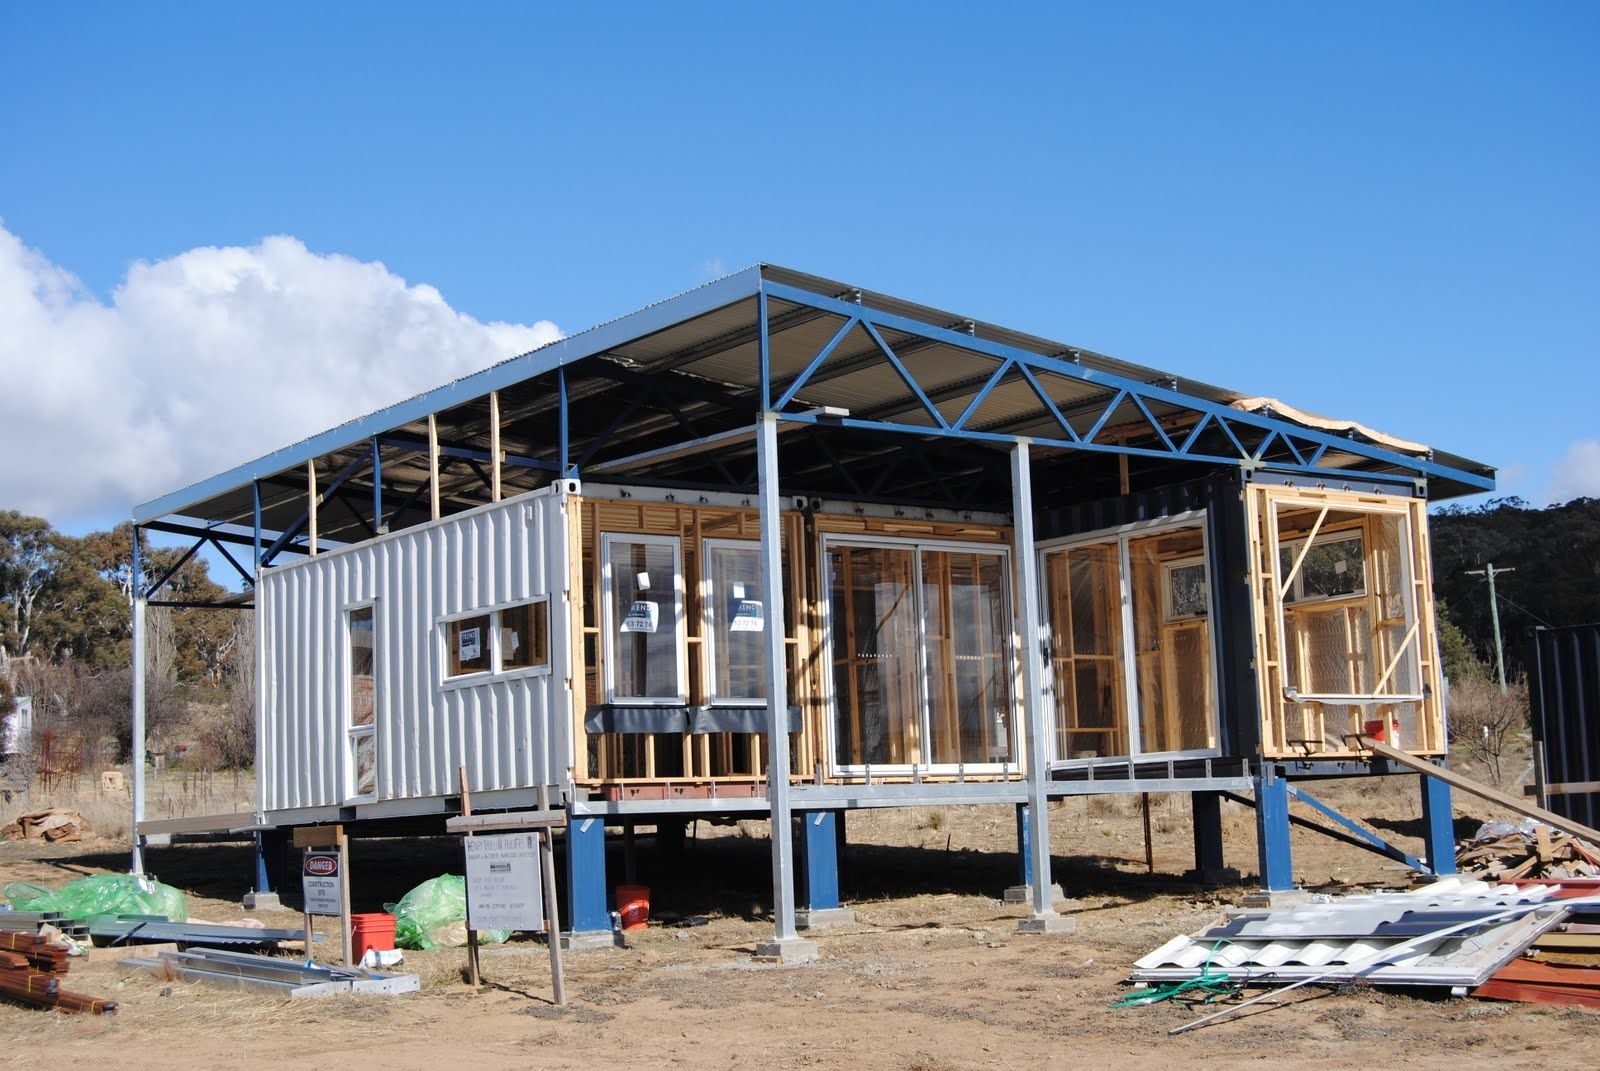 How To Build A Shipping Container House Interesting Start On A Shipping Container House The Back Container